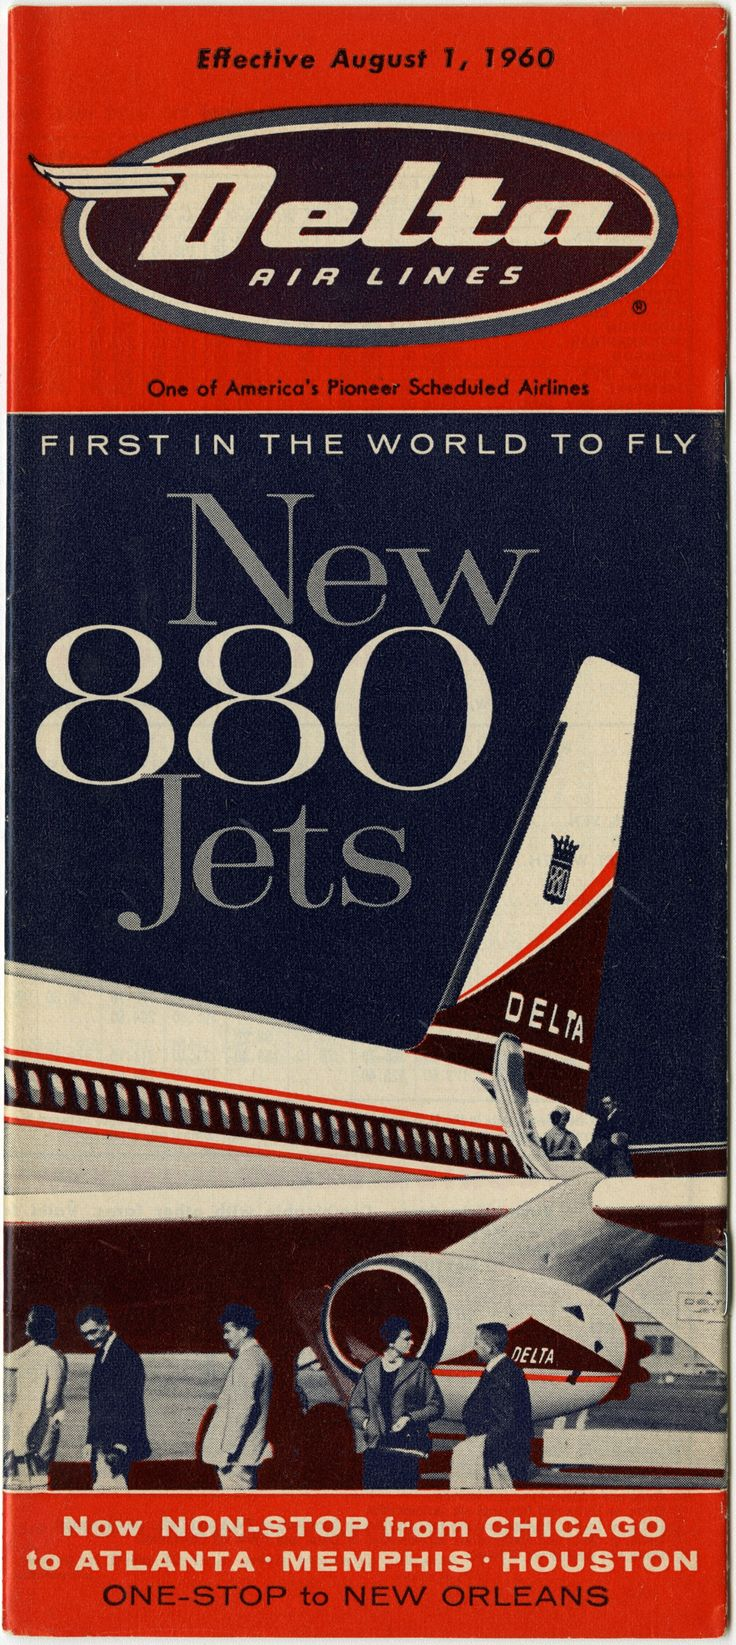 454 best Airline History images on Pinterest | Aircraft, Airplane ...